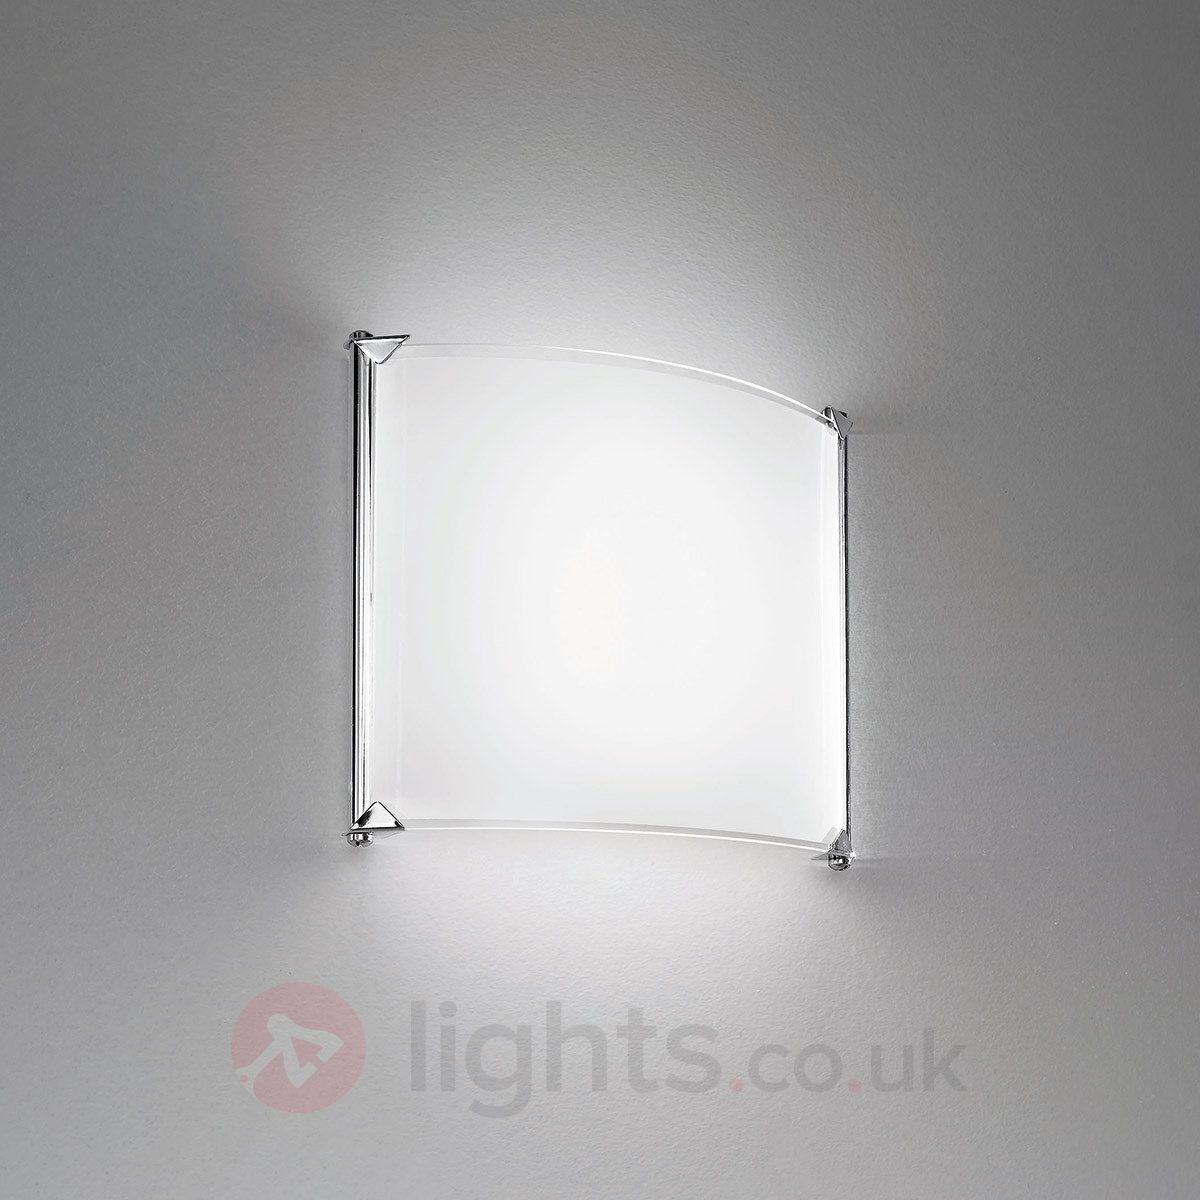 Brixi LED Wall Light Simple Warm White